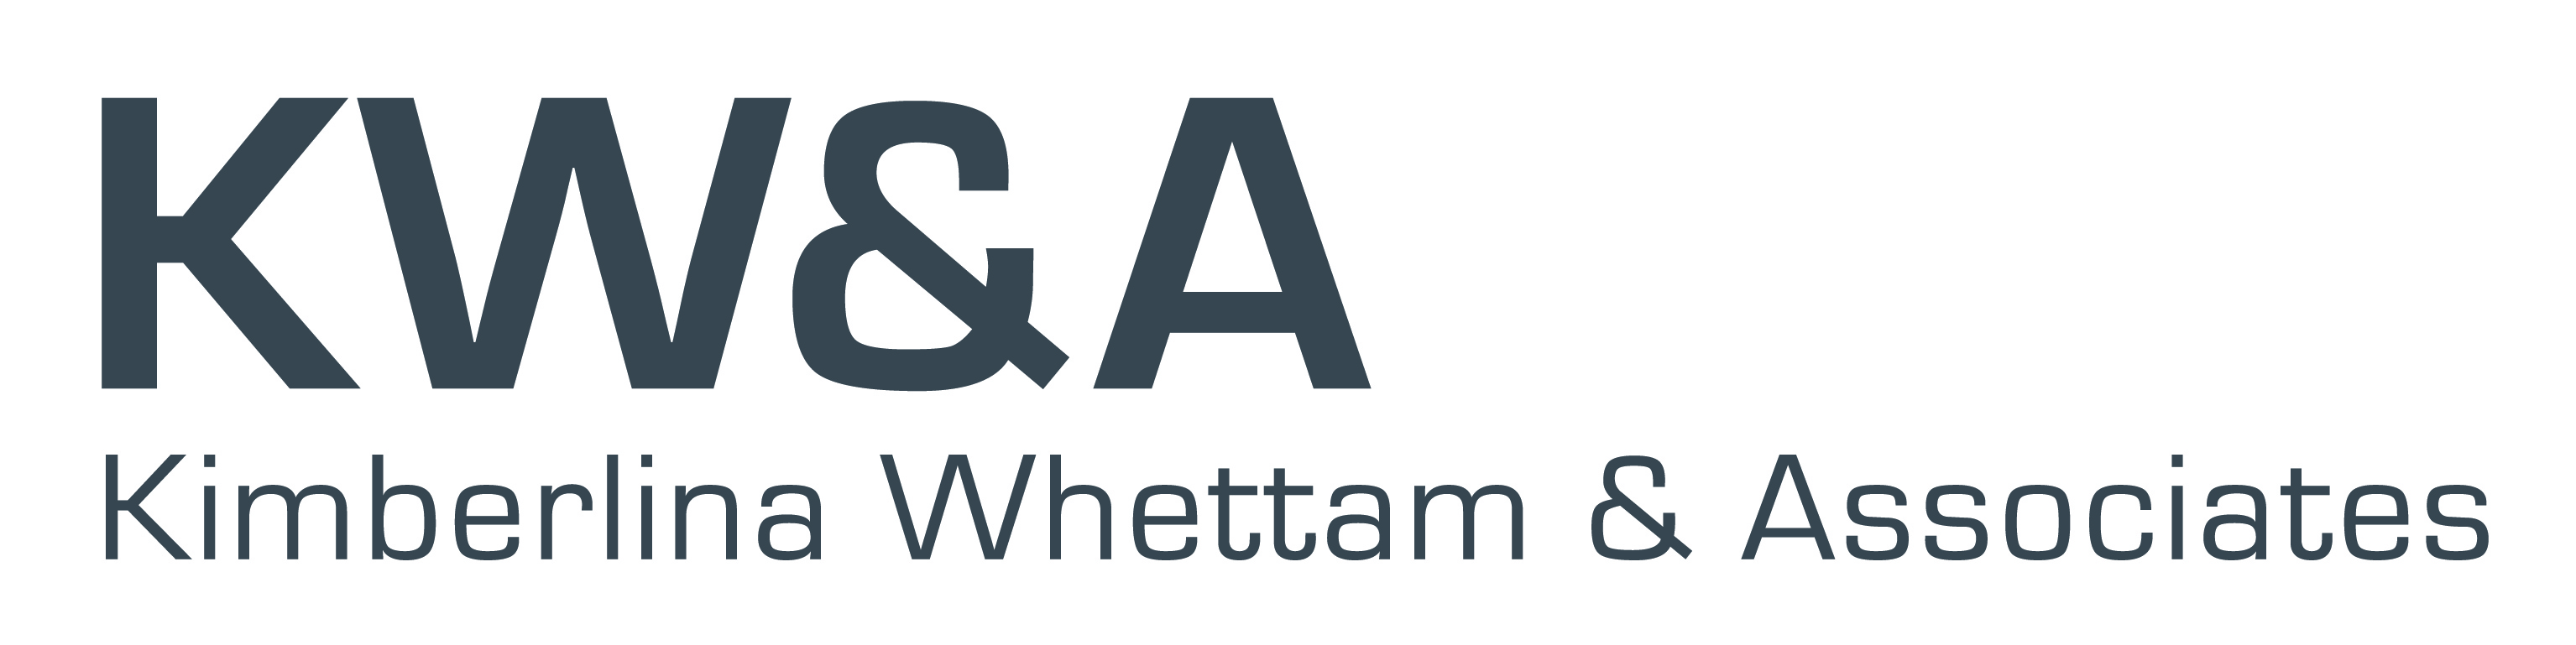 Kimberlina Whettam & Associates